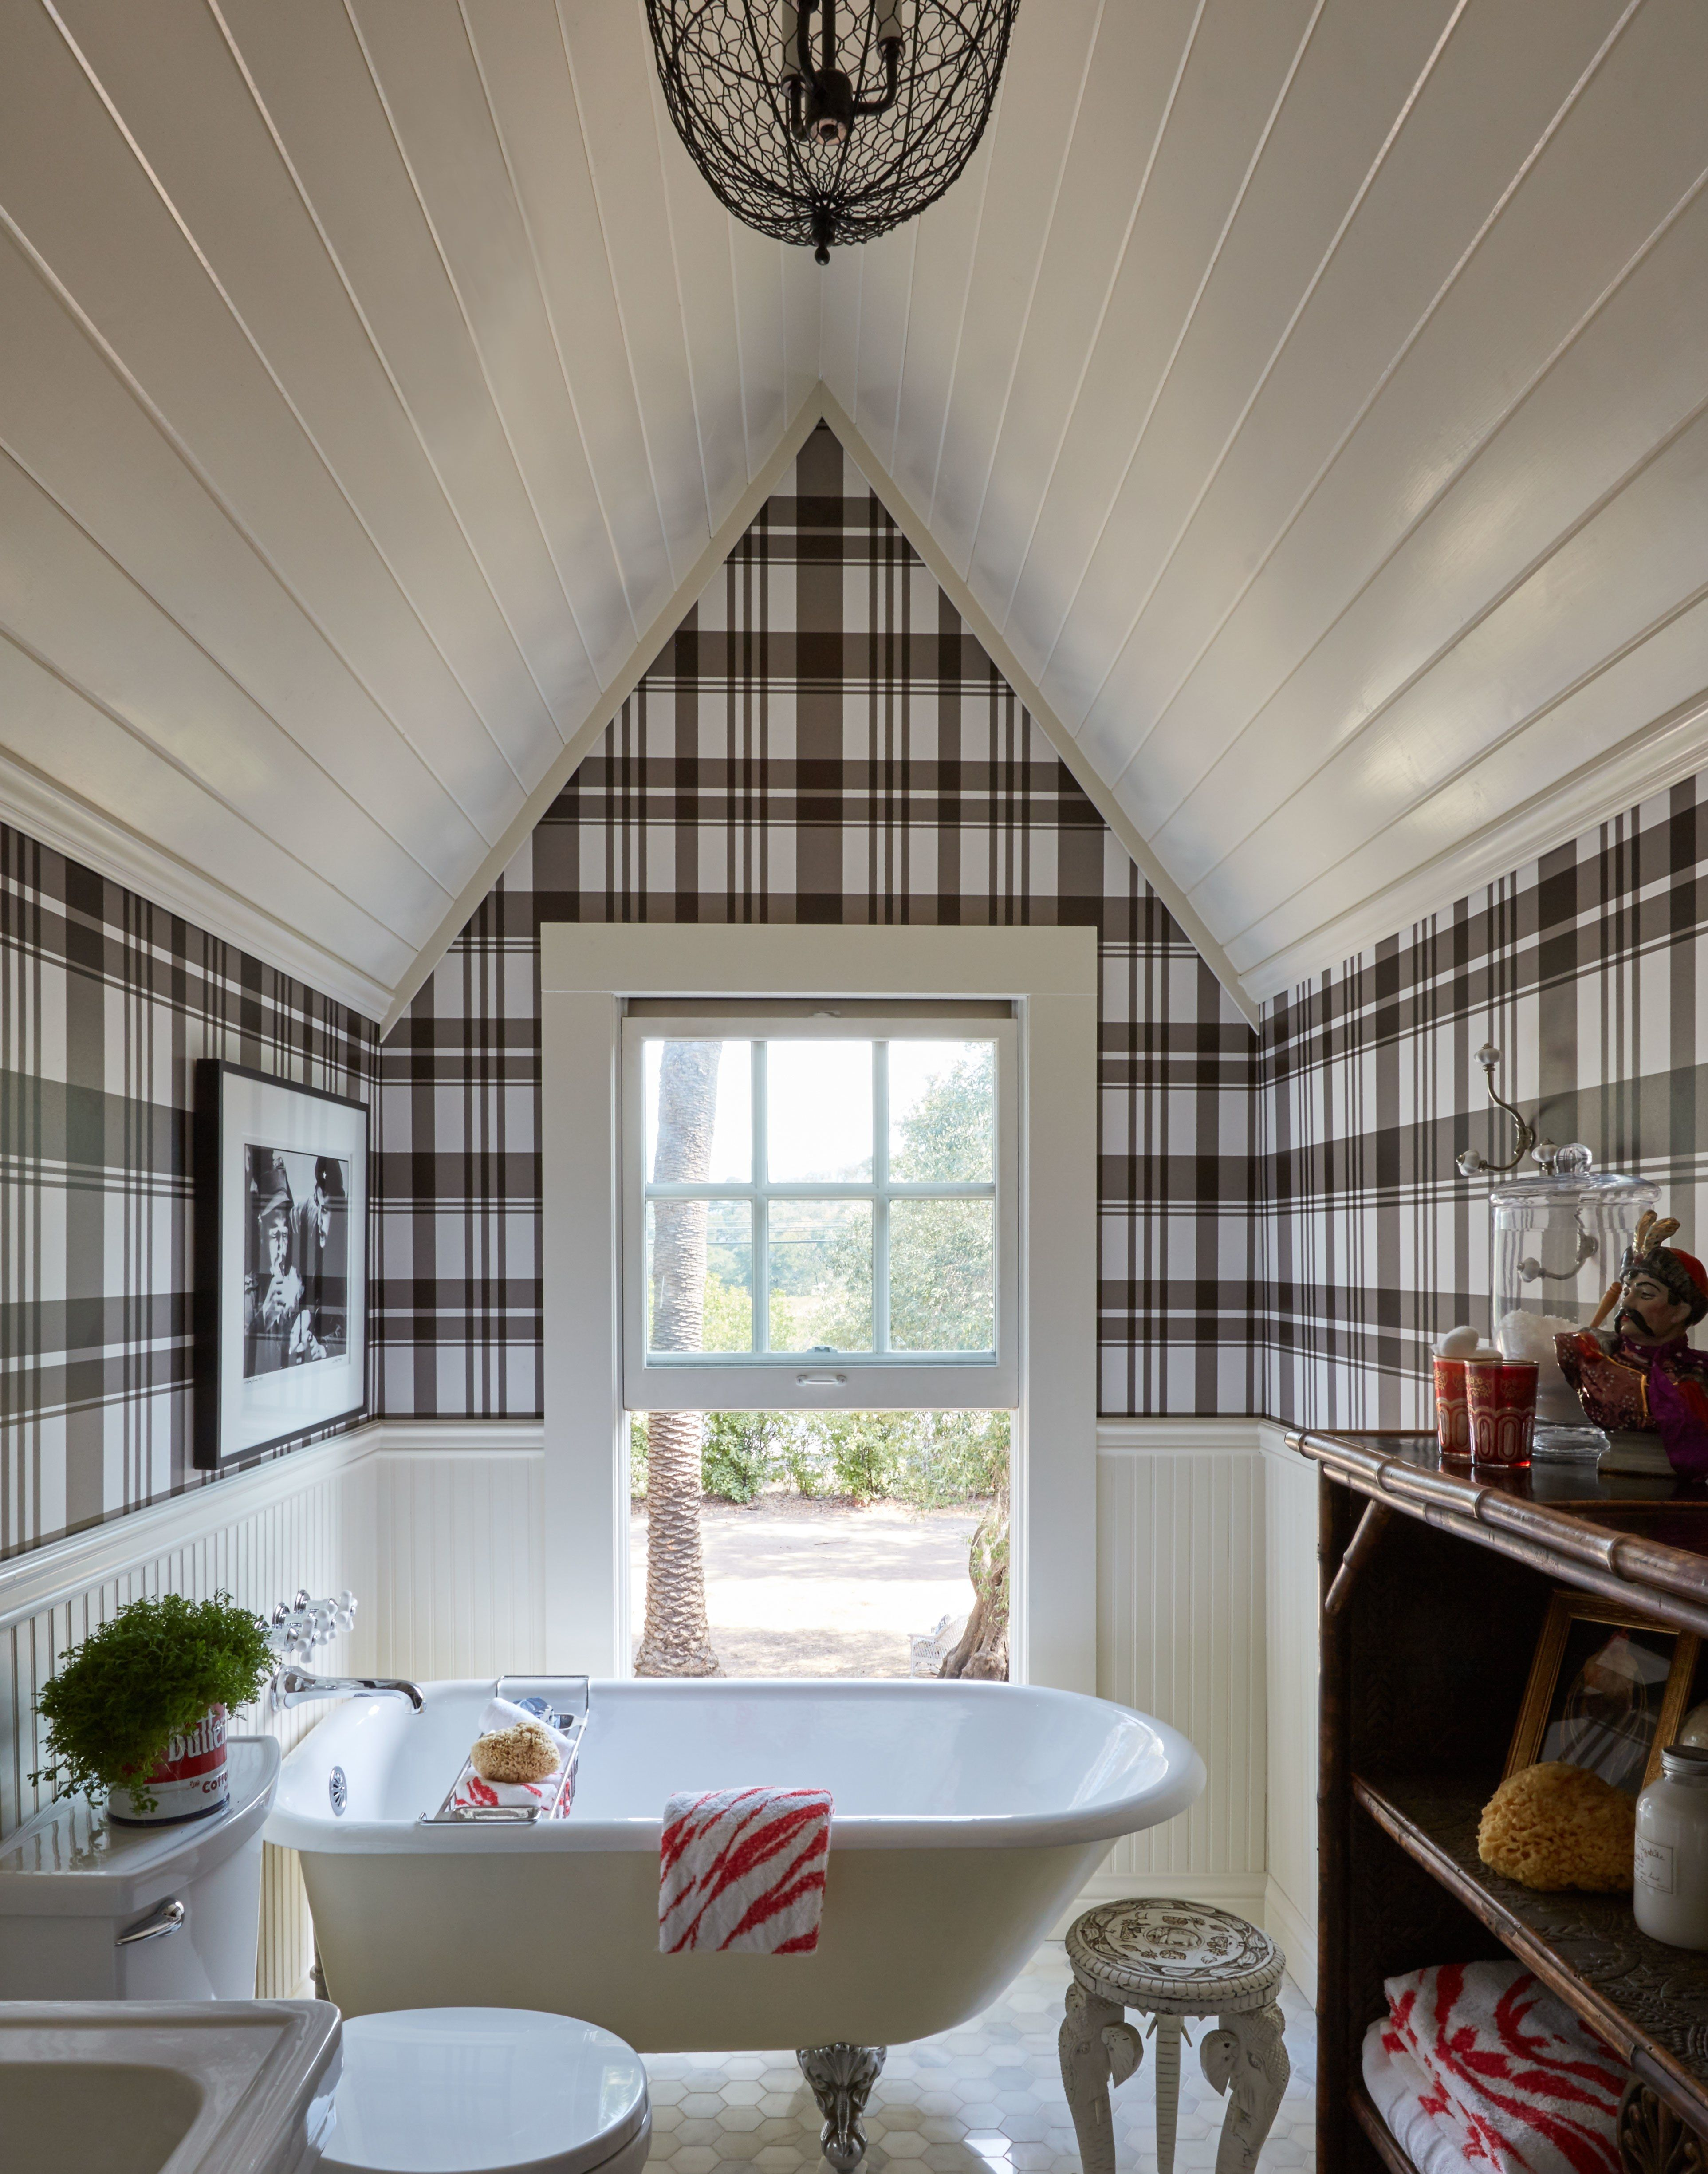 A little about how to insulate the ceiling in a country house and a bath